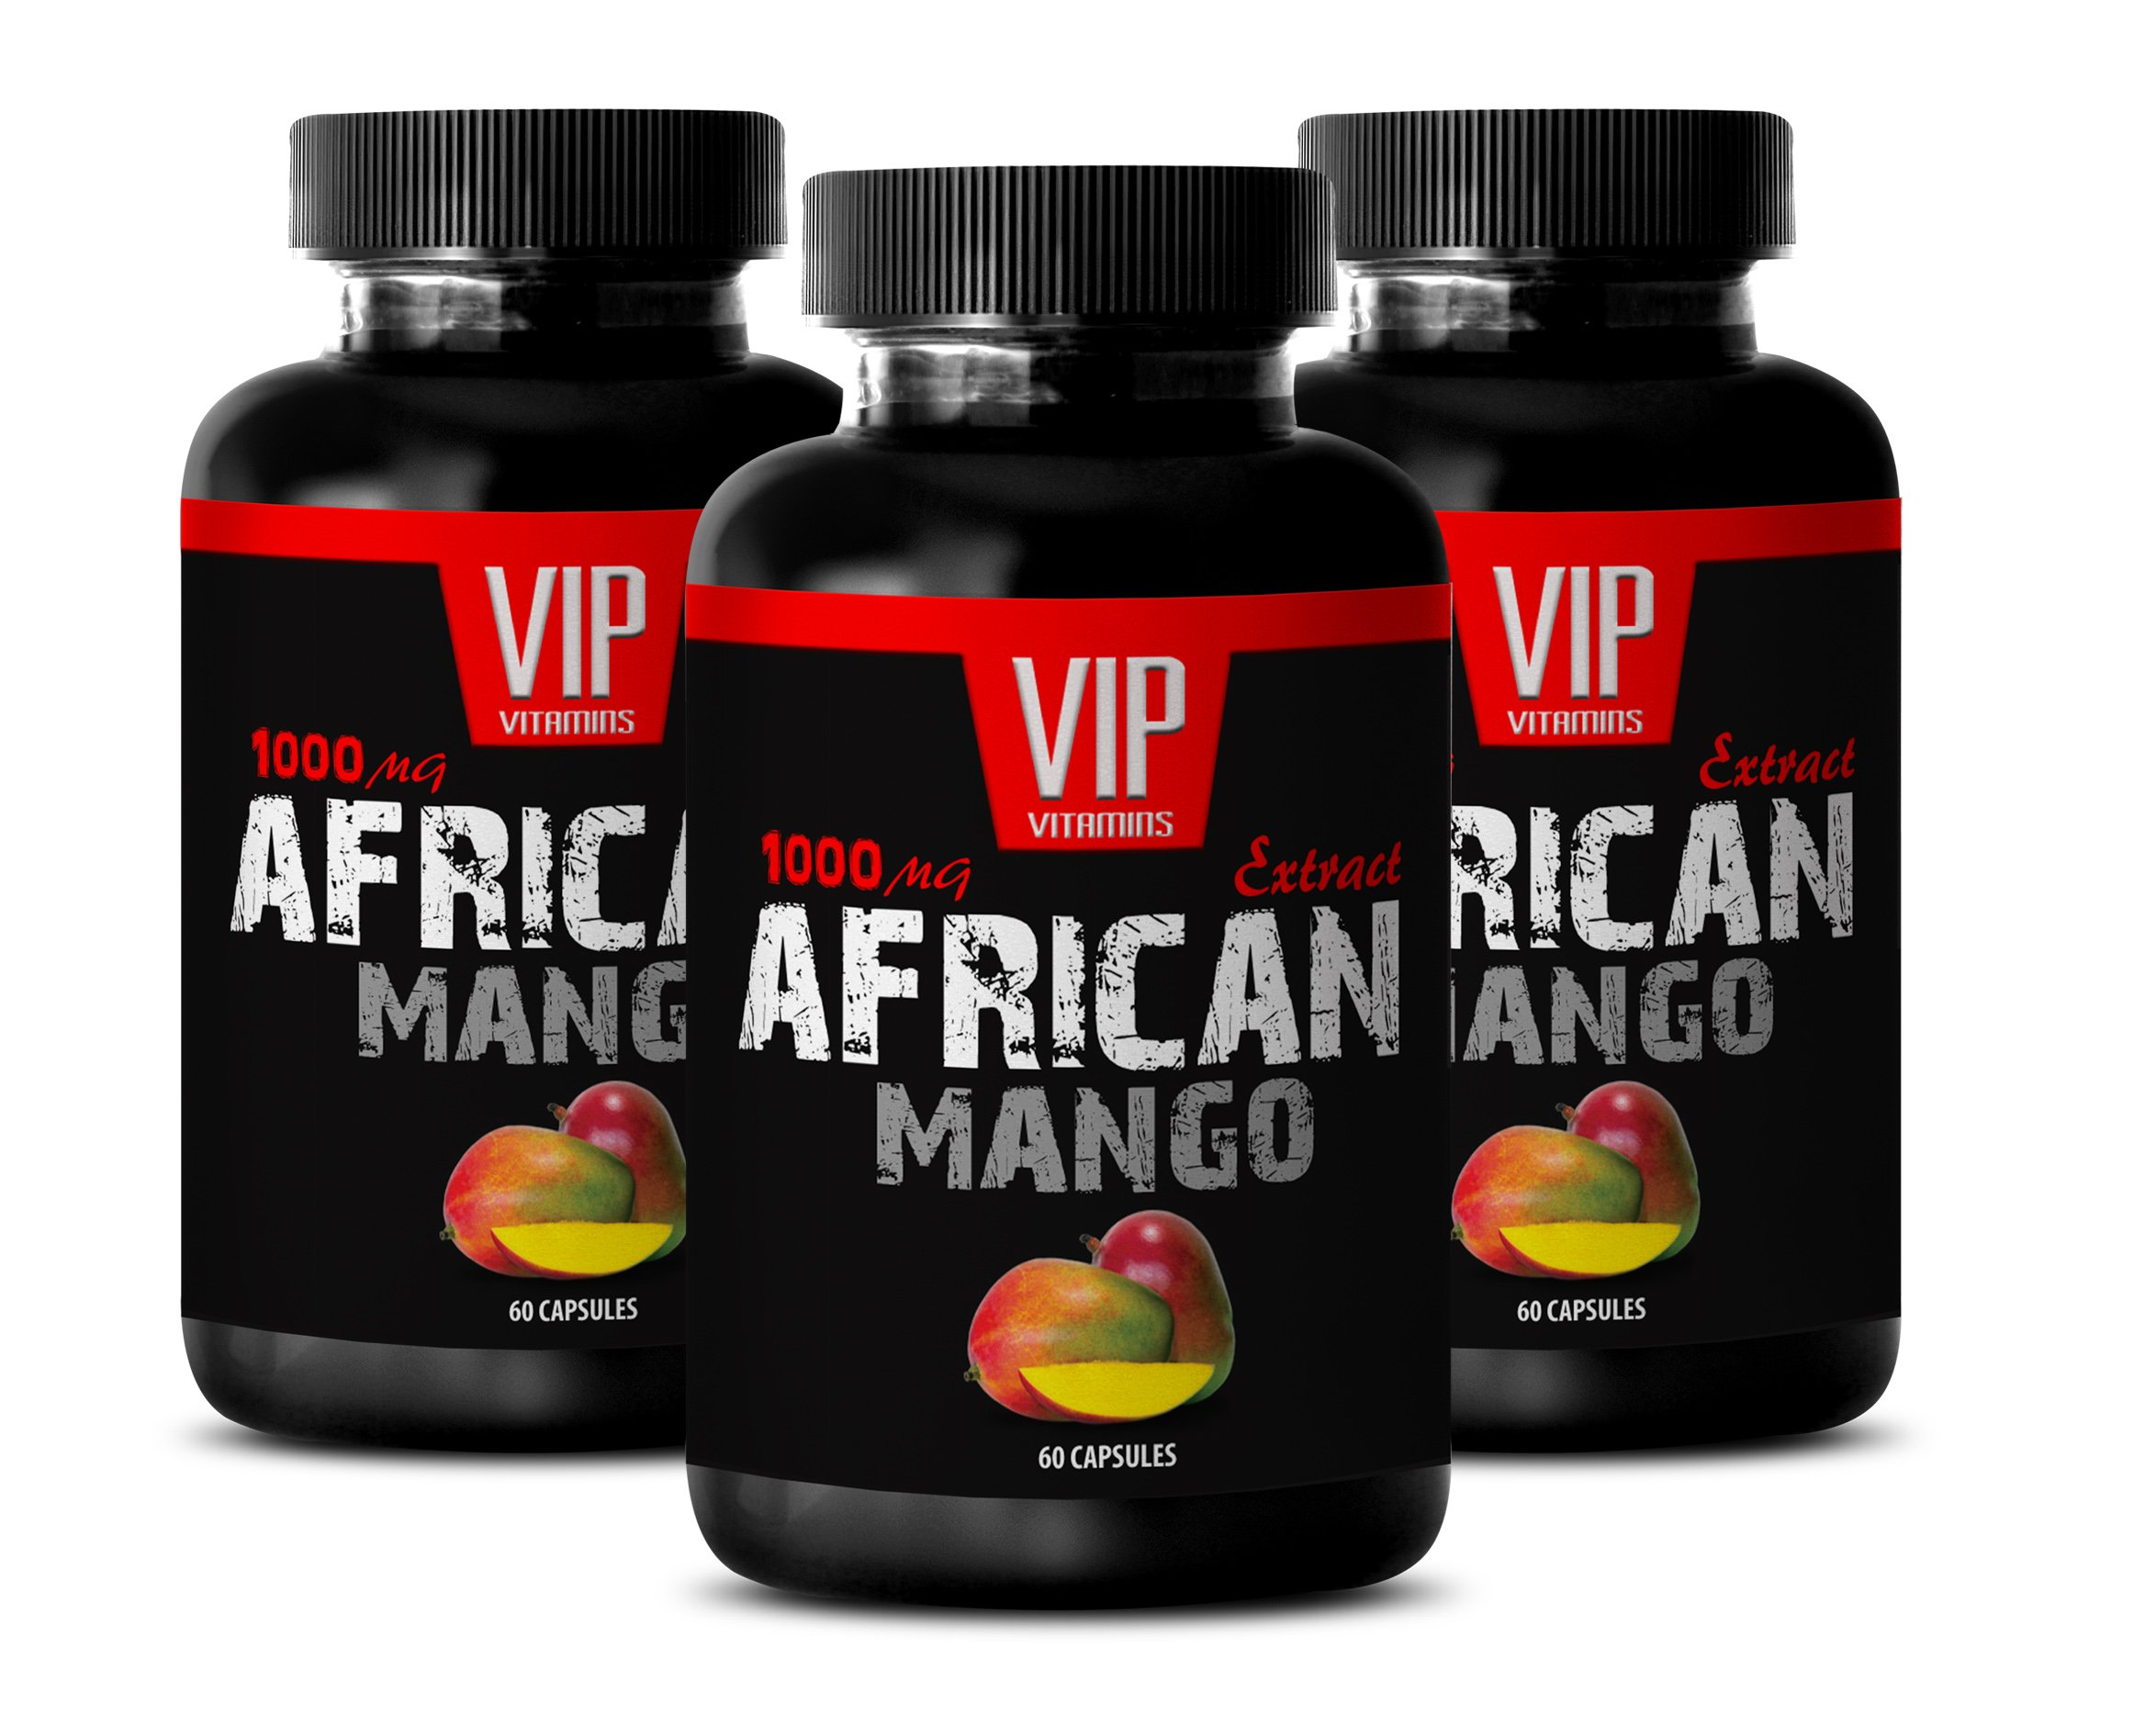 Libido booster for men sex - AFRICAN MANGO EXTRACT 1000MG - Mango supplement - 3 Bottle (180 Capsules)